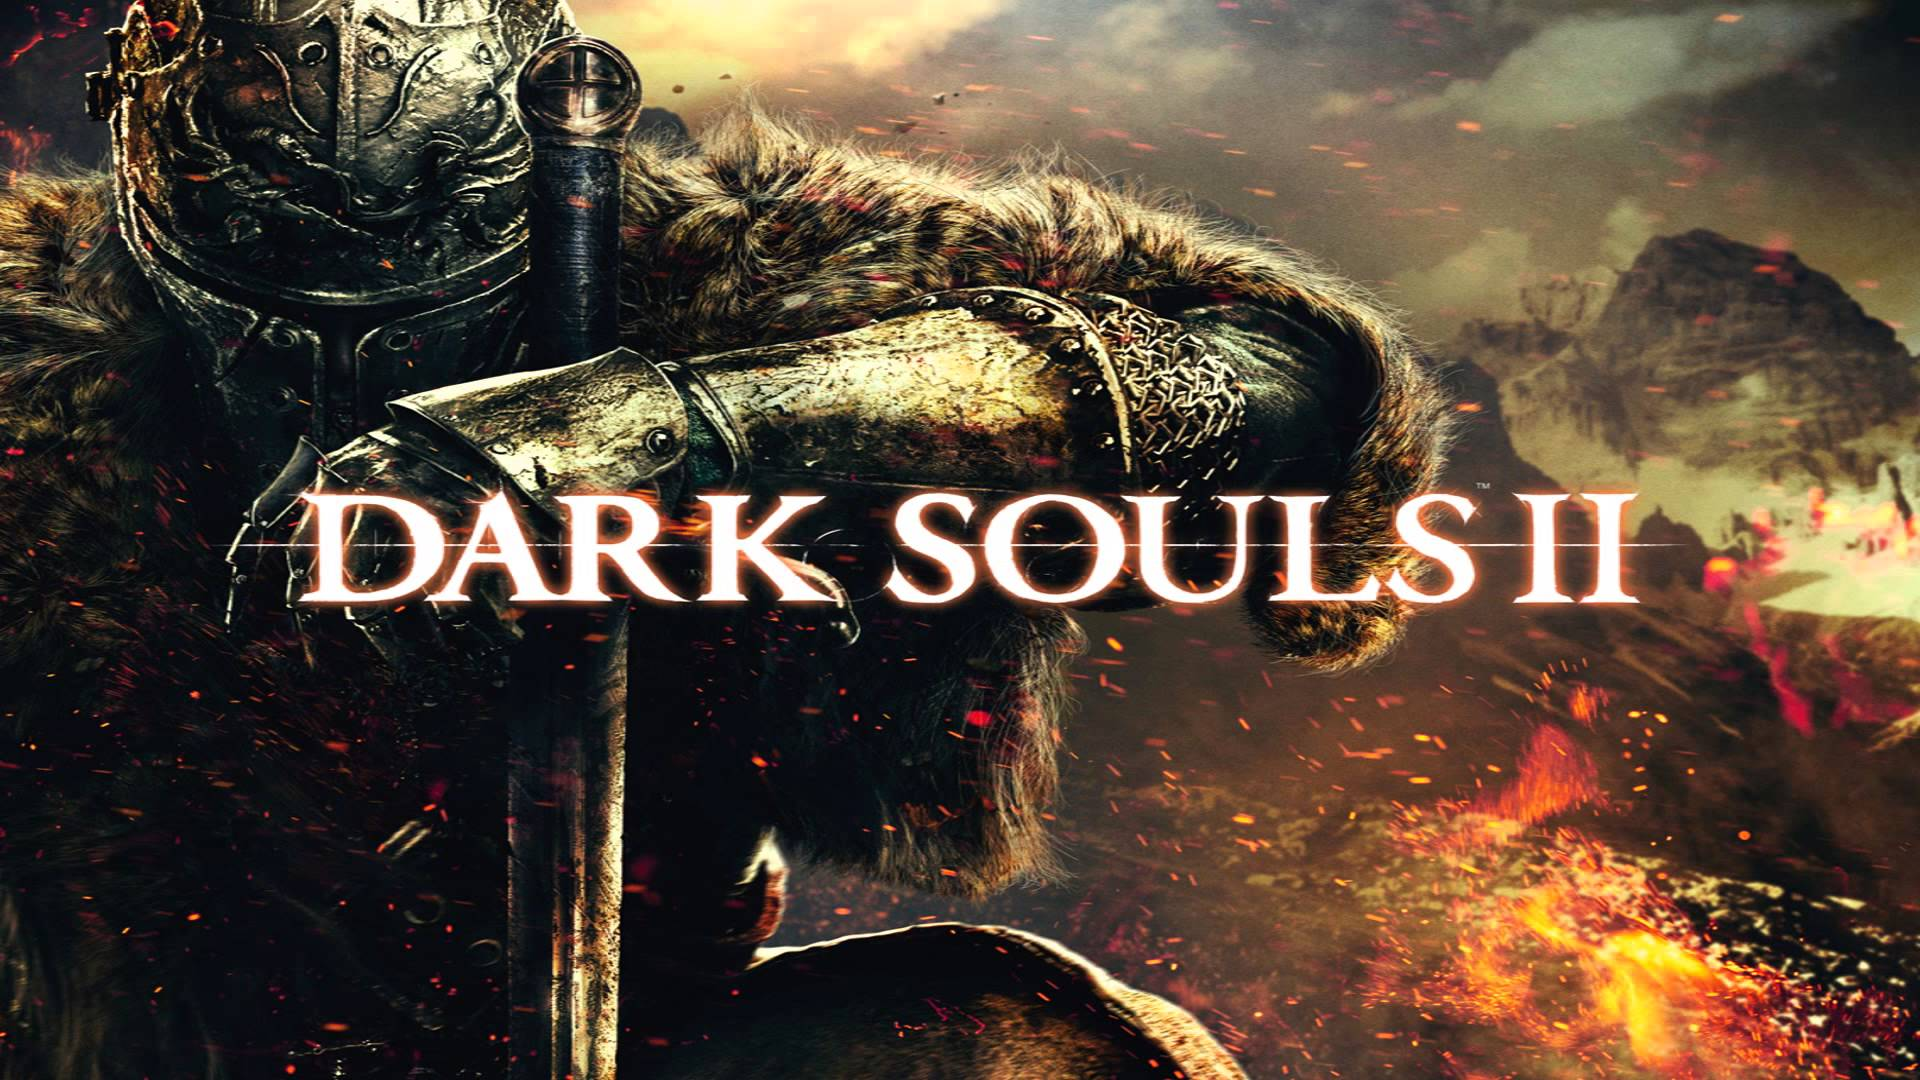 Dark Souls II 2: Scholar of the First Sin Highly Compressed PC Game Download